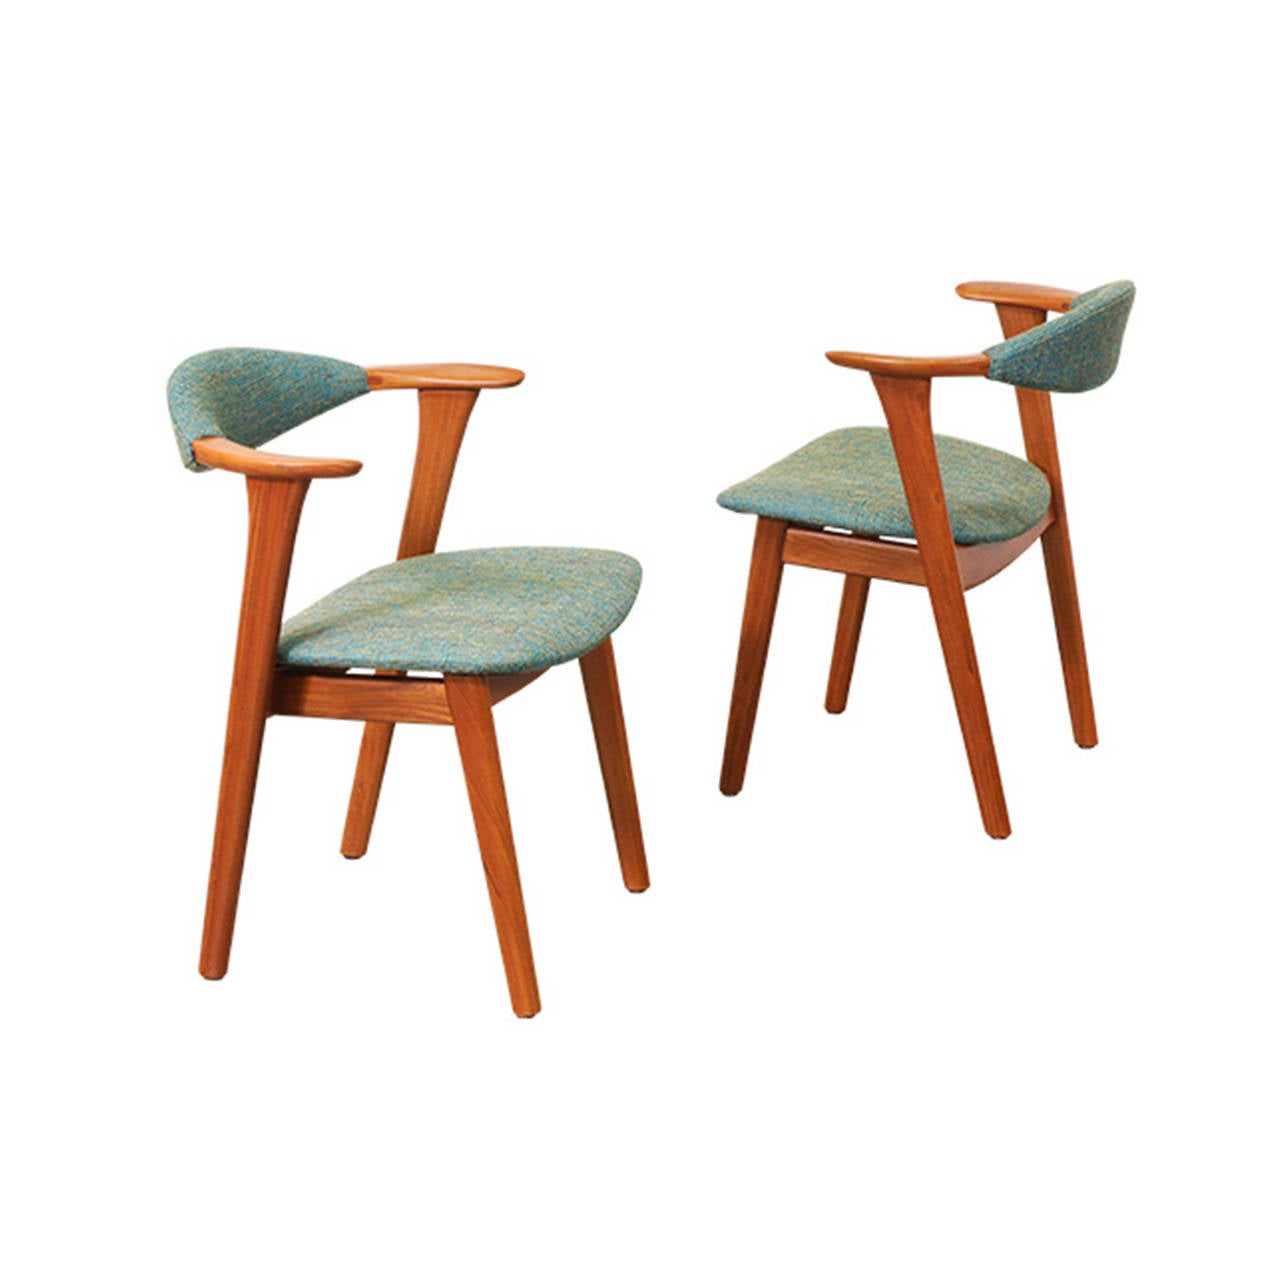 stool chair hong kong koala posture erik kirkegaard bullhorn teak dining chairs for